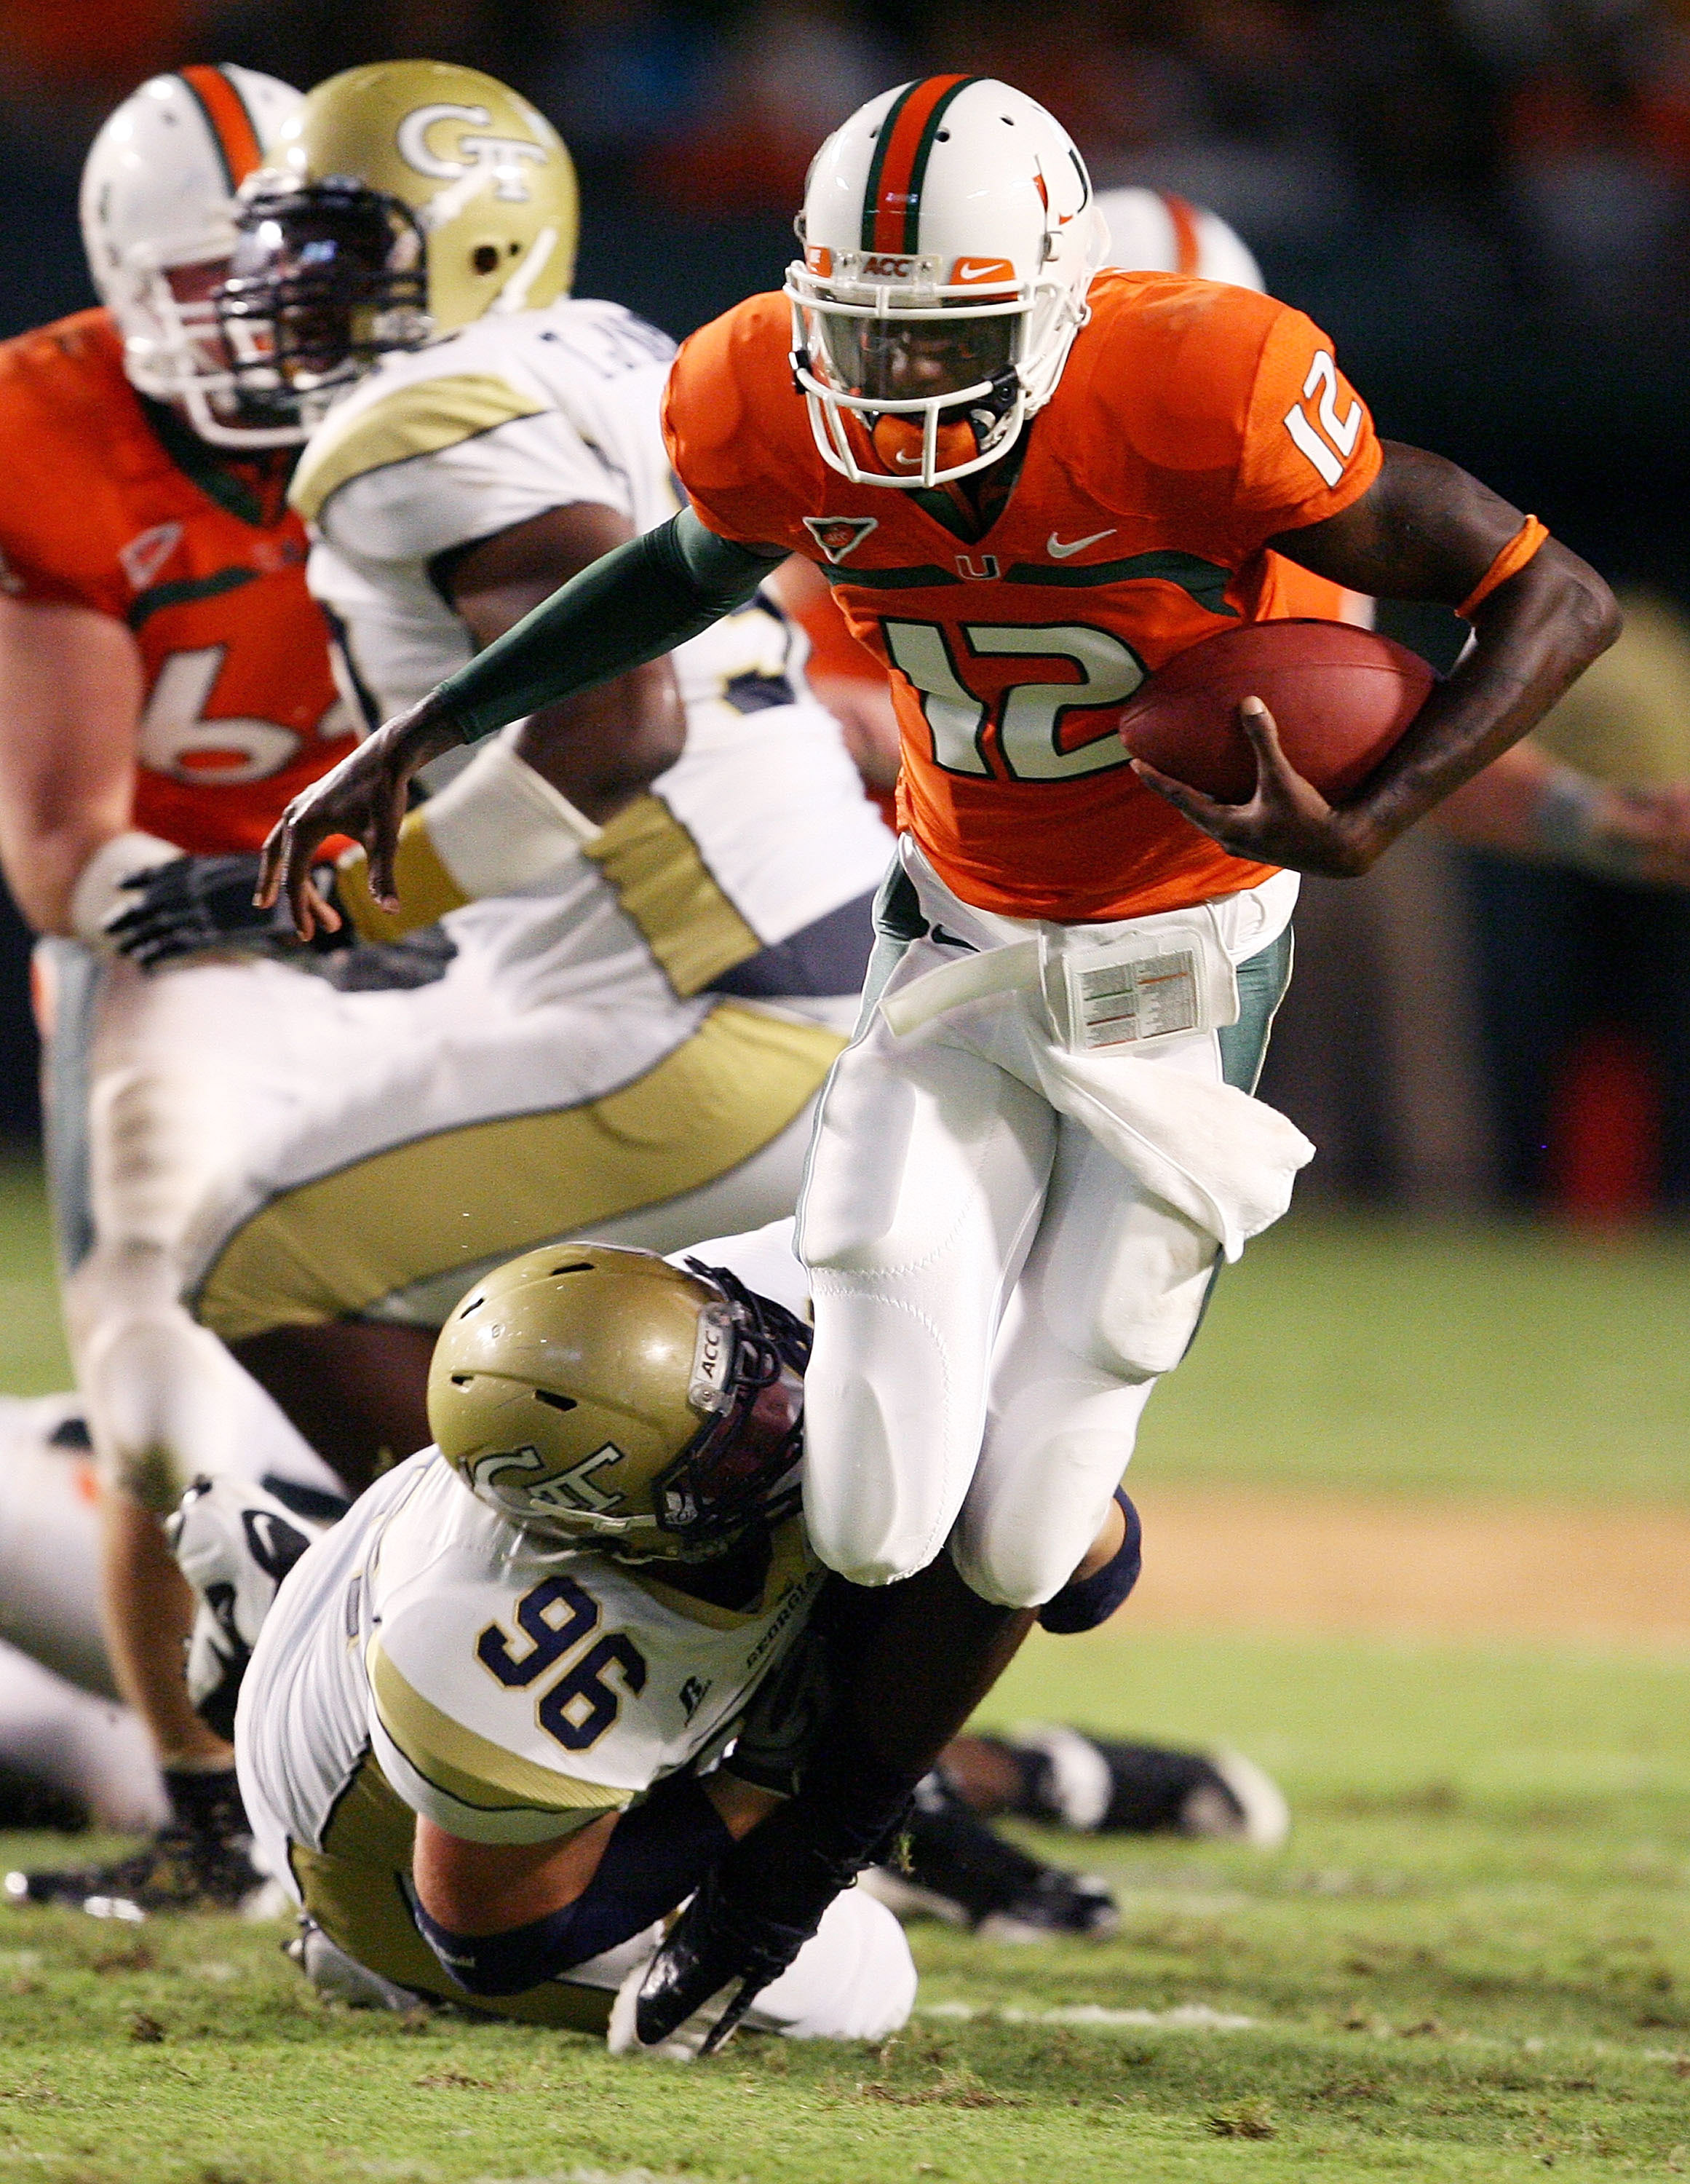 FORT LAUDERDALE, FL - SEPTEMBER 17:  Quarterback Jacory Harris #12 of the Miami Hurricanes is brought down by defensive tackle Logan Walls #96 of the Georgia Tech Yellow Jackets at Land Shark Stadium on September 17, 2009 in Fort Lauderdale, Florida. Miam